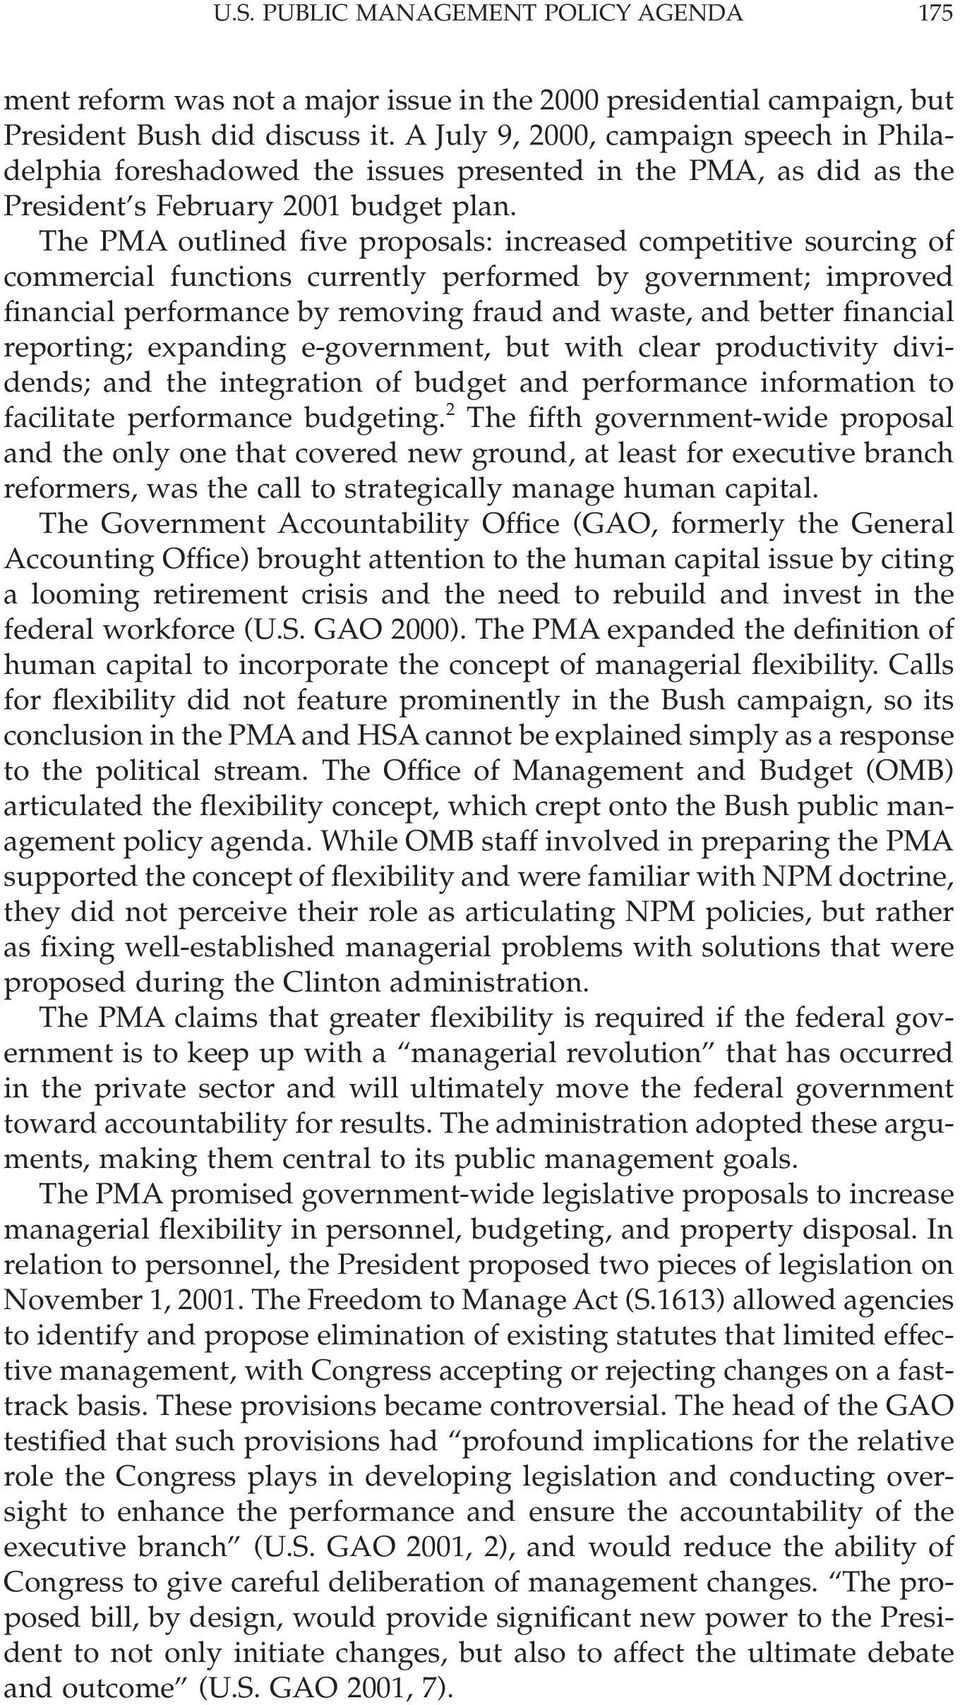 The PMA outlined five proposals: increased competitive sourcing of commercial functions currently performed by government; improved financial performance by removing fraud and waste, and better